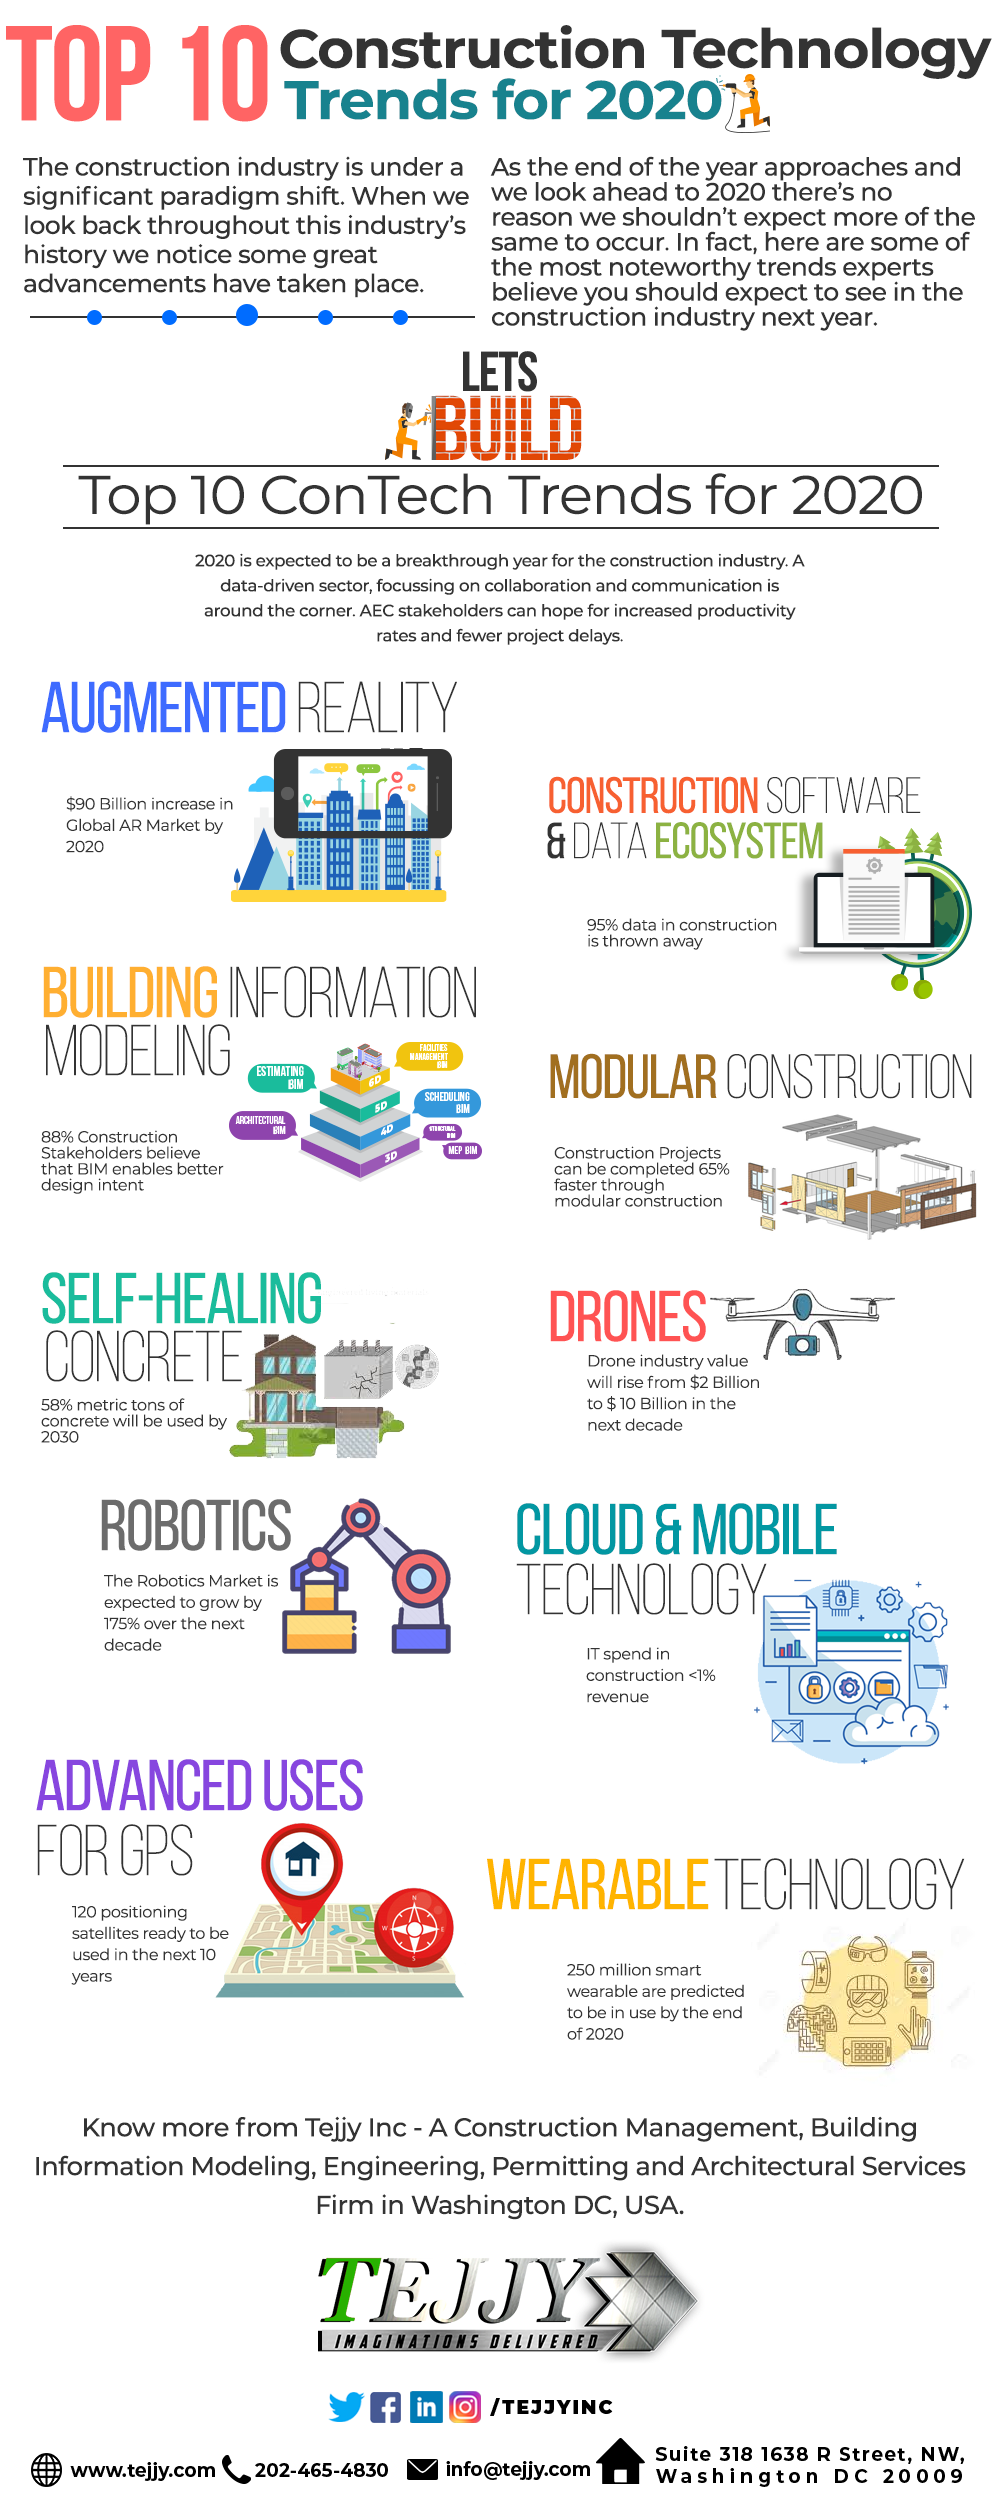 Construction Technology Trends For 2020 Technology Trends Construction Management Building Information Modeling